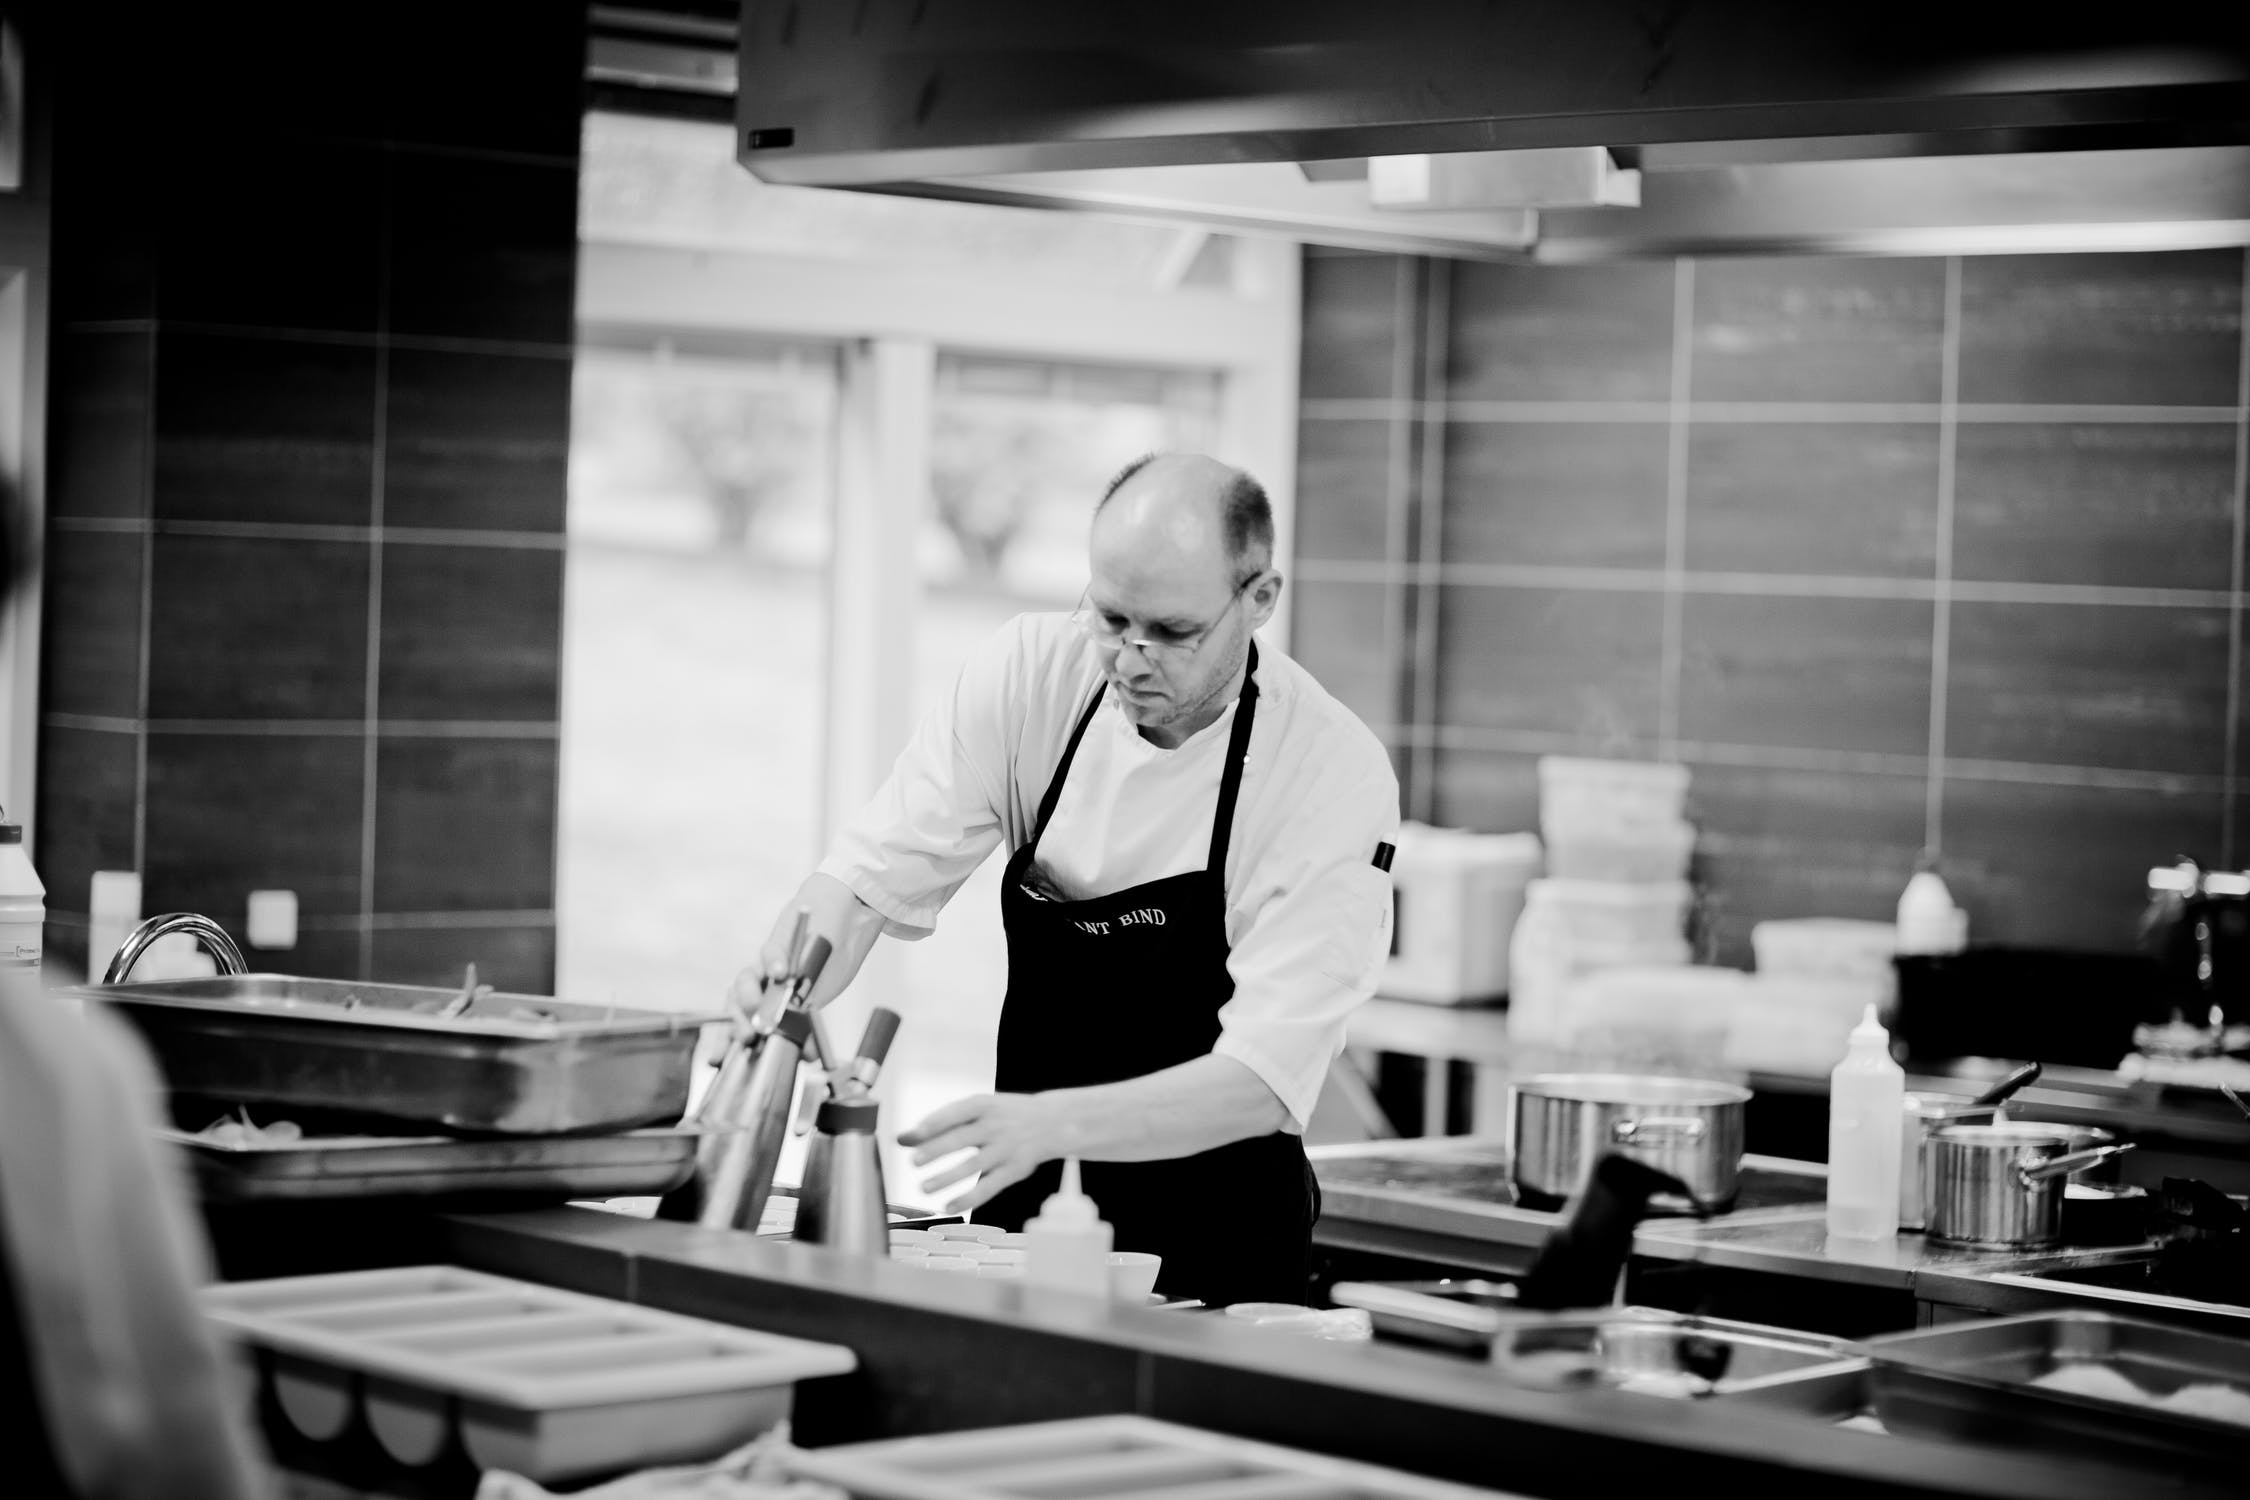 A chef in the kitchen concentrating hard